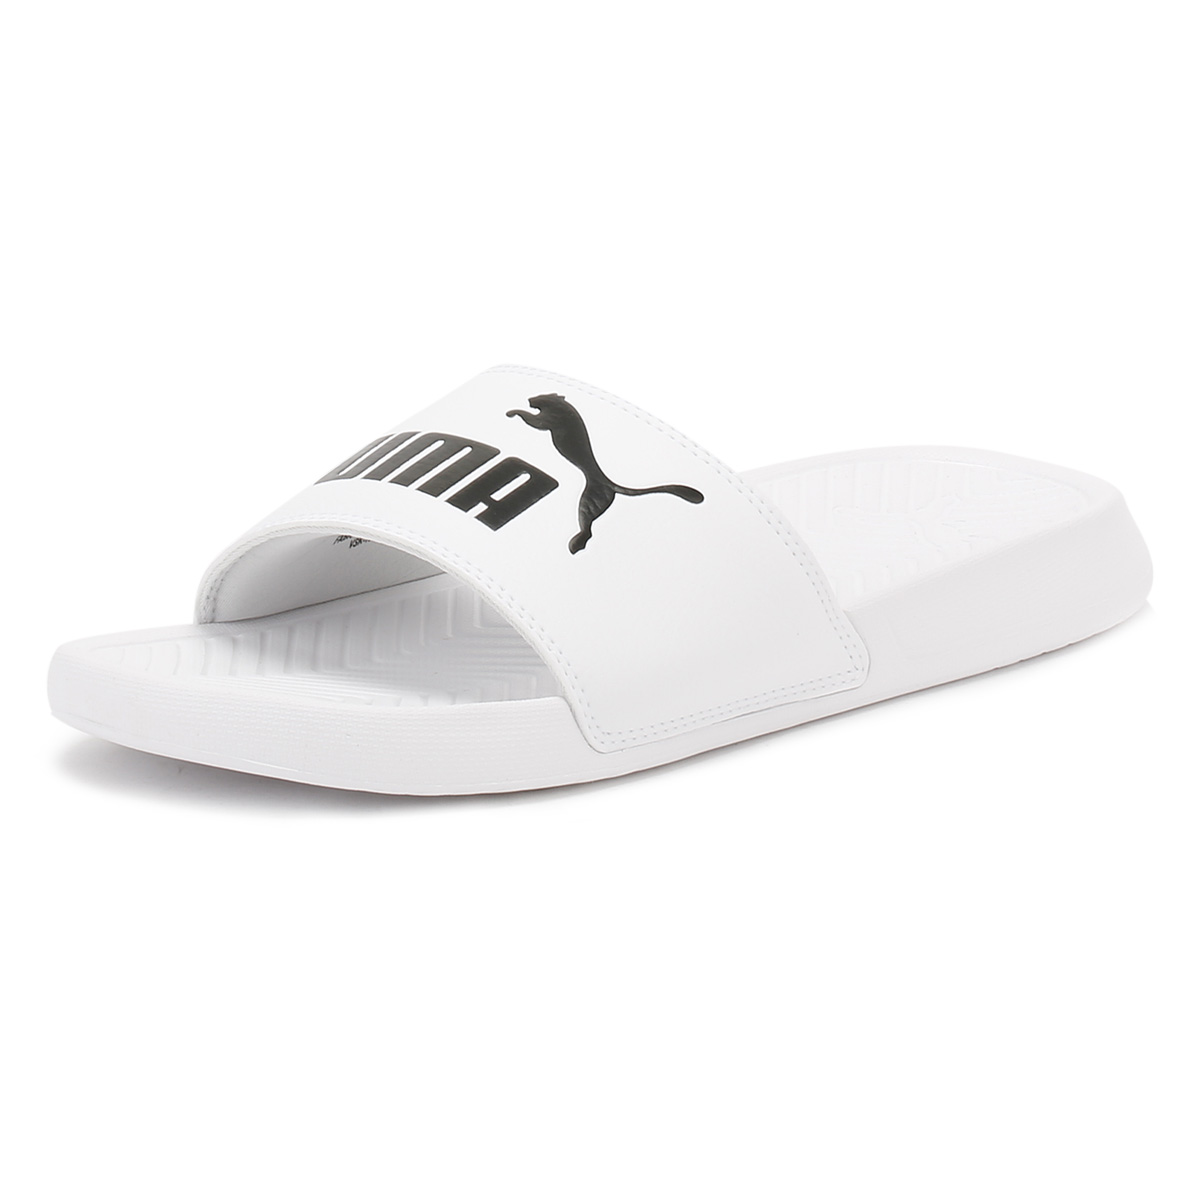 5dae628fba1c7d PUMA Unisex White Popcat Slides Summer Beach Sandals Rubber Shoes